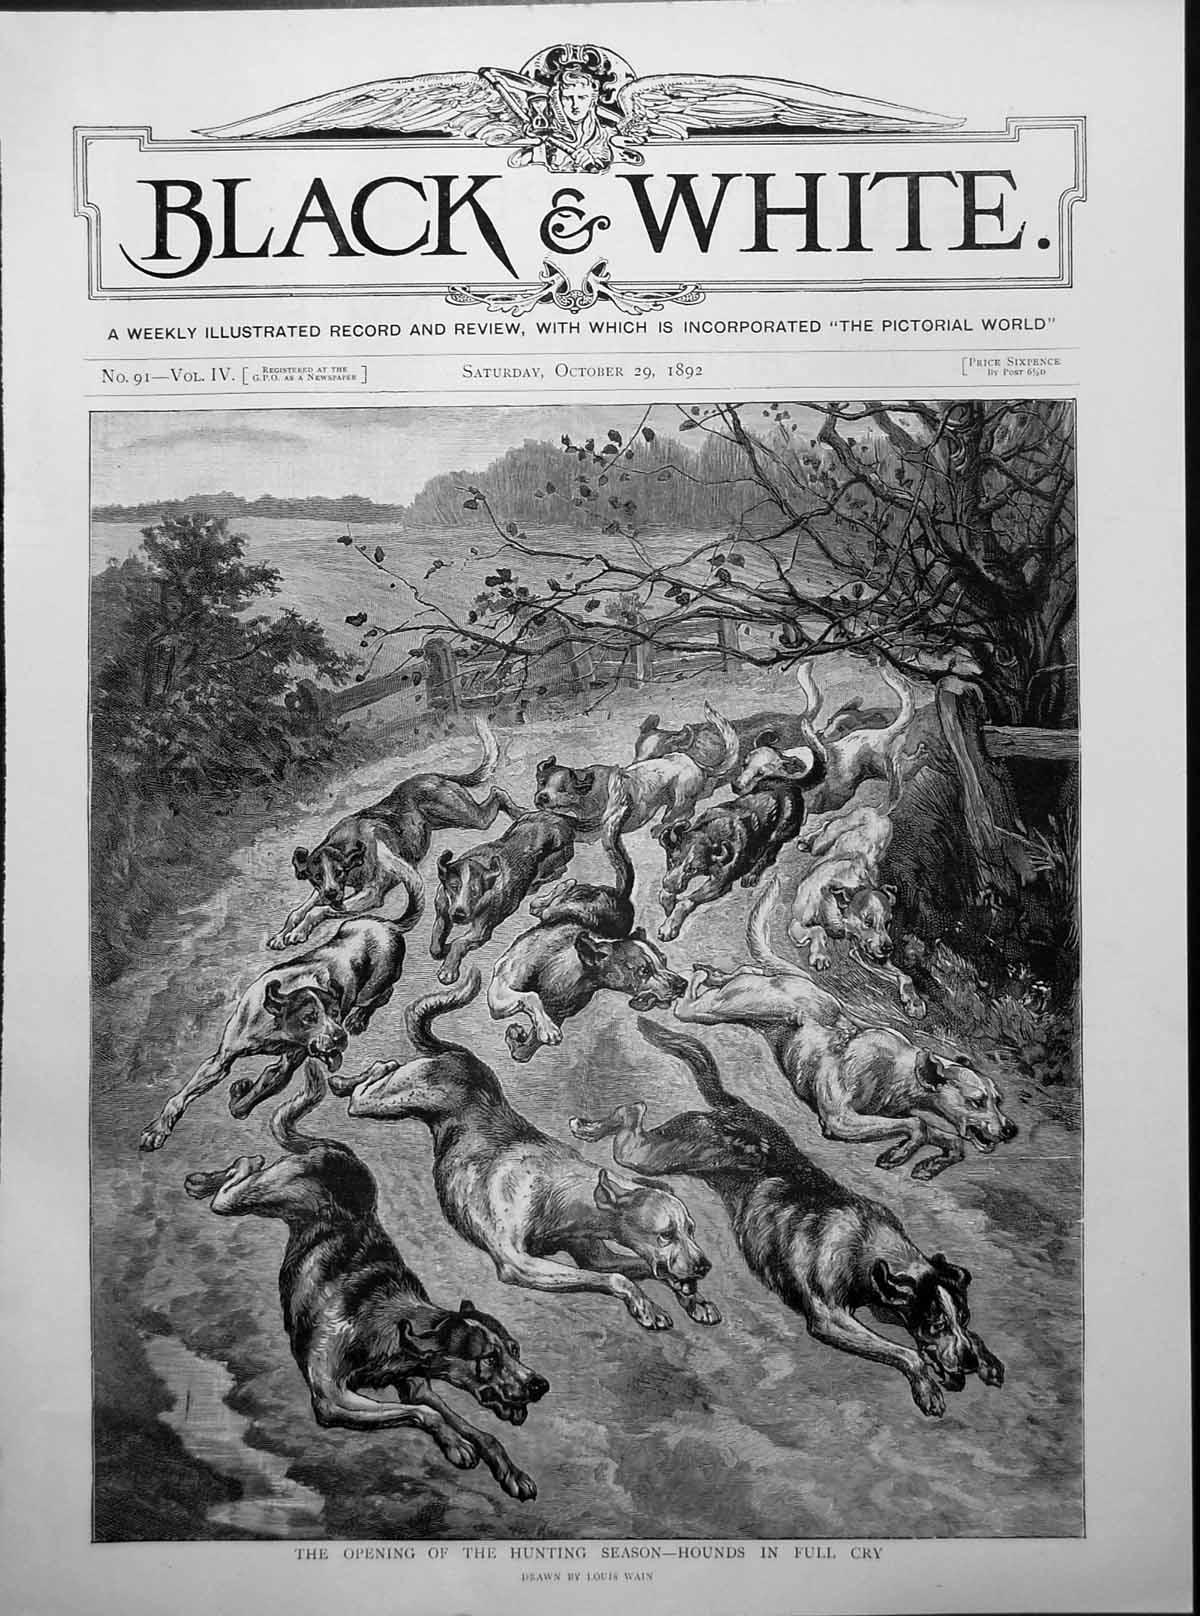 [Print Hounds Full Cry Opening Hunting Season Lane Dogs L Wain 1892 203G367 Old Original]